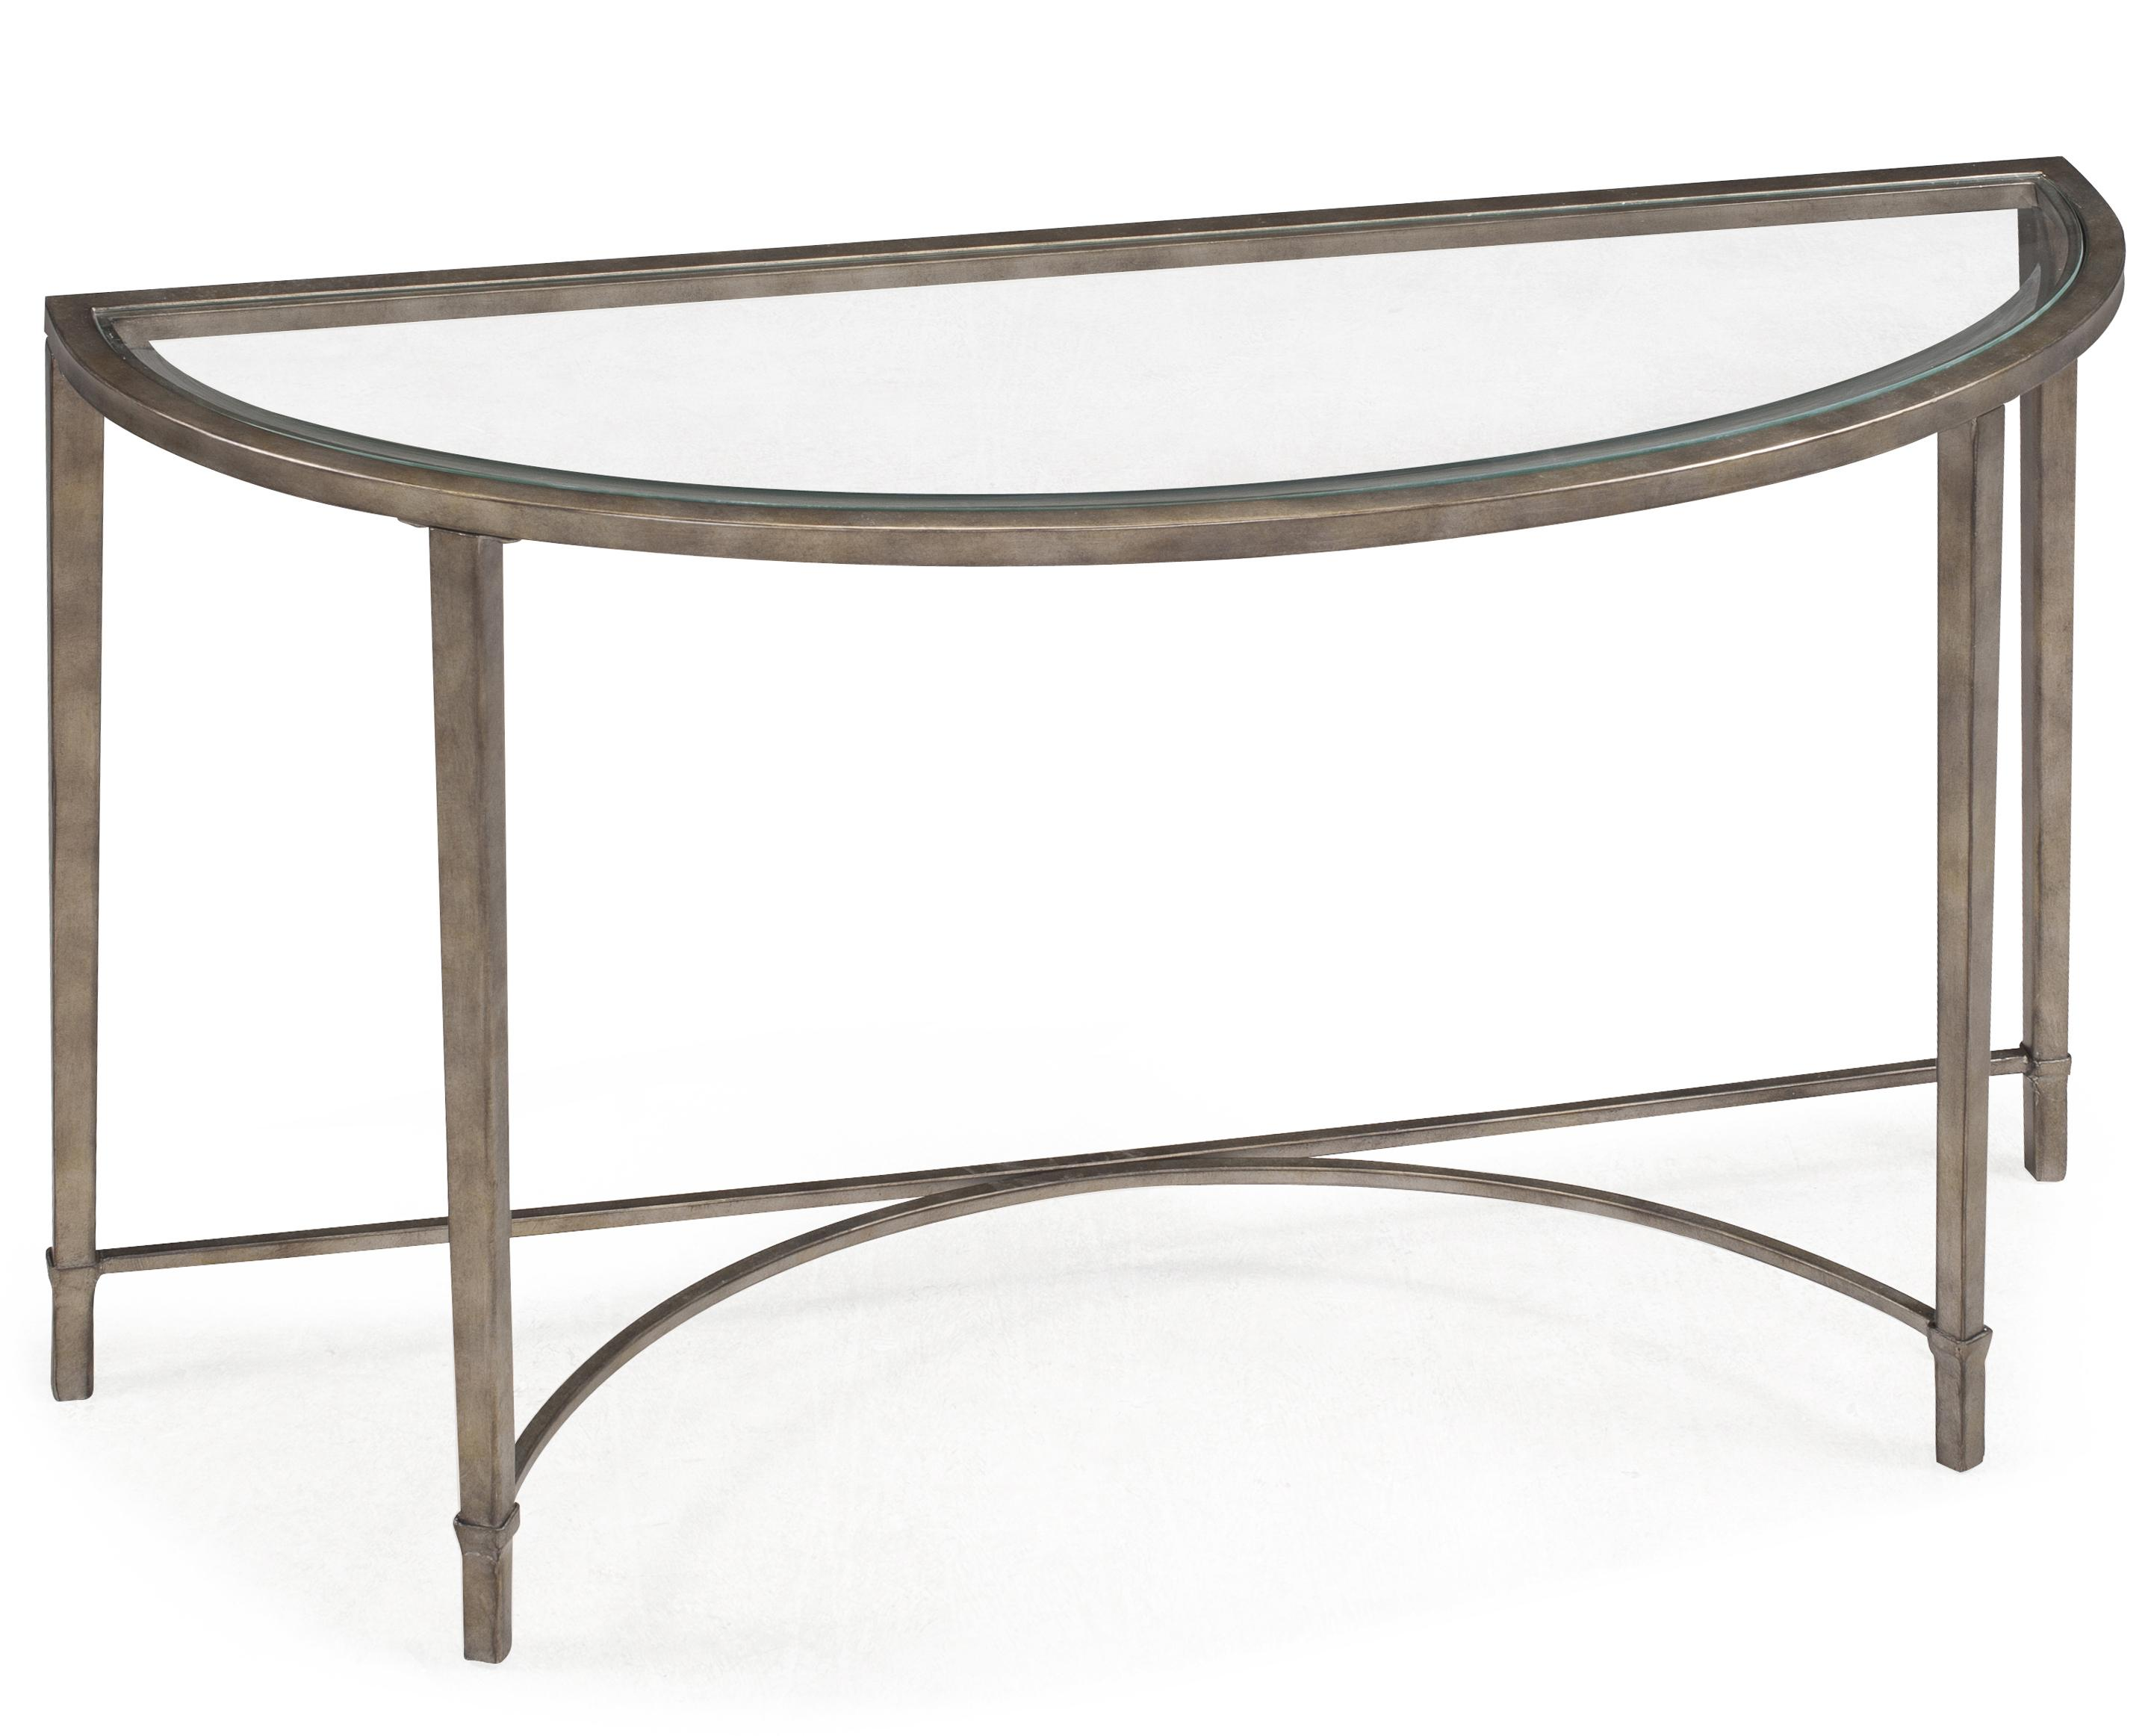 small console table glass sofa size and metal foyer tufted black curved leather contemporary coffee end tables wrought iron accent top full plastic garden side transition pieces